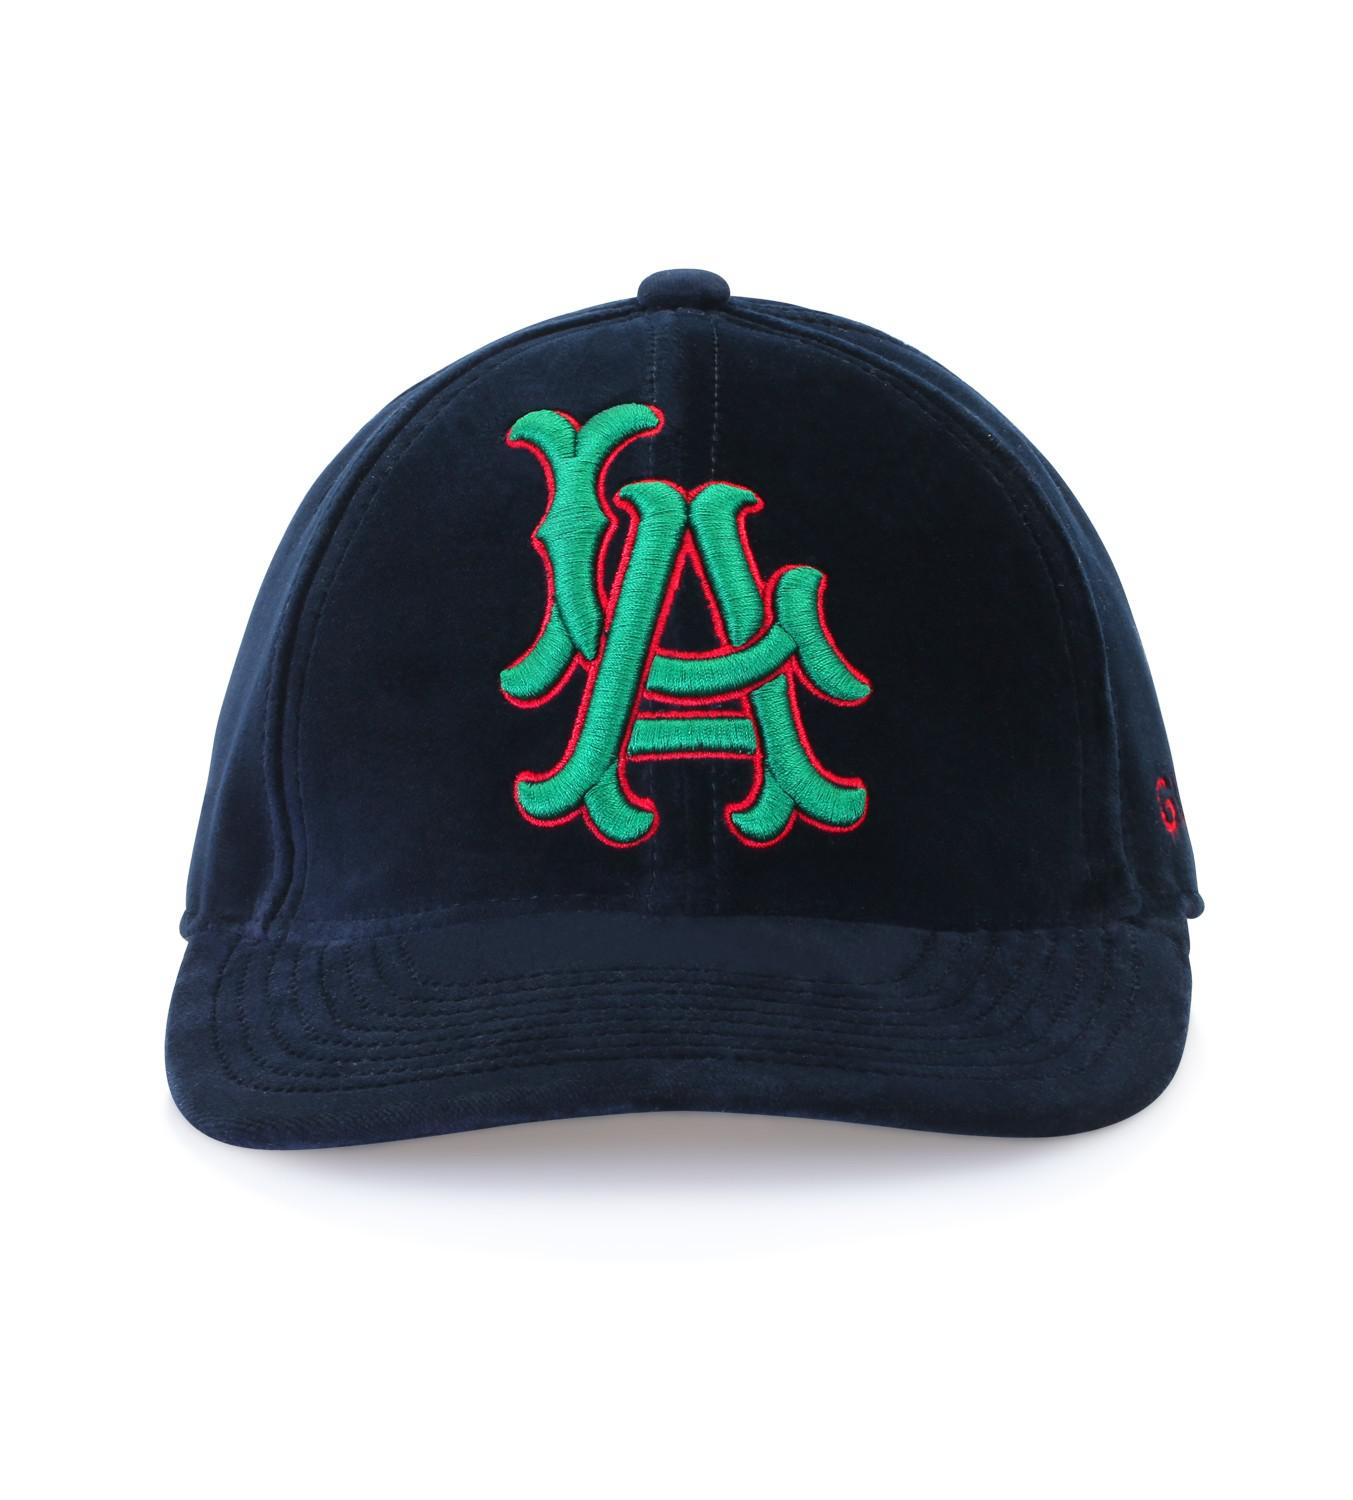 6995c9d7 Gucci Dark Blue Runway Baseball Hat With La Angelstm Patch in Blue ...